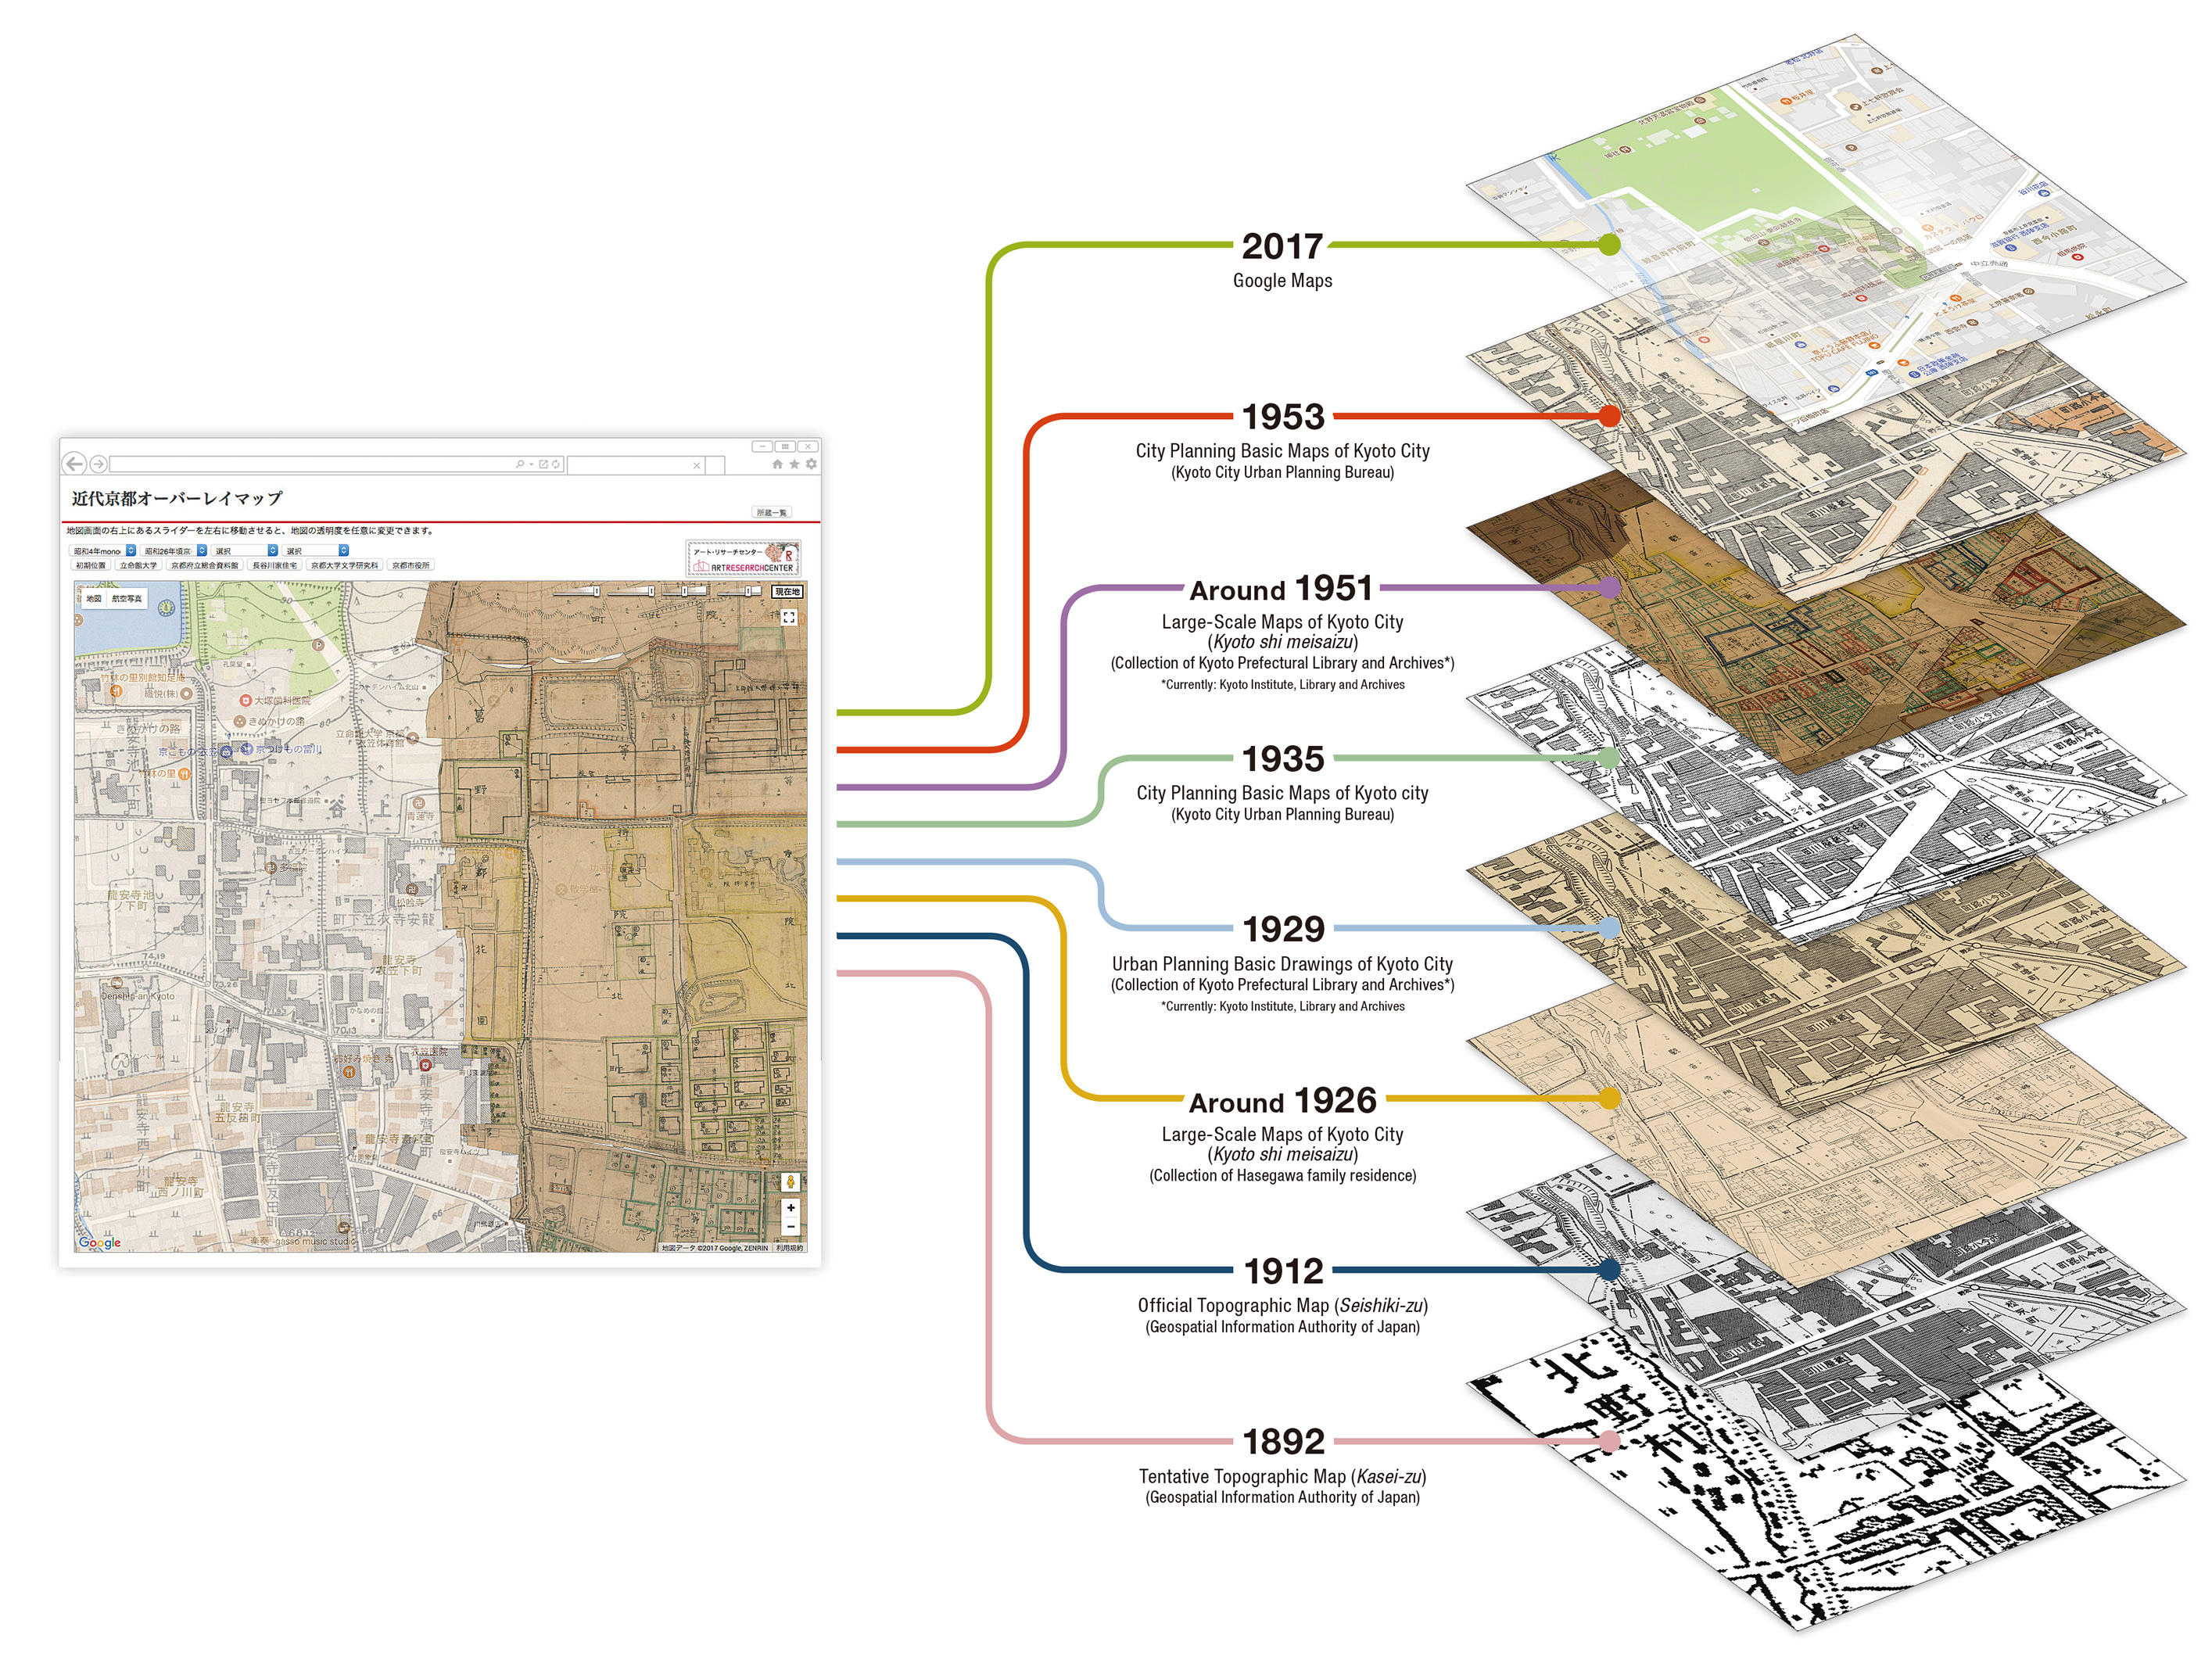 Digitally Archiving The Space Of Kyoto Across Place And Time Kyoto